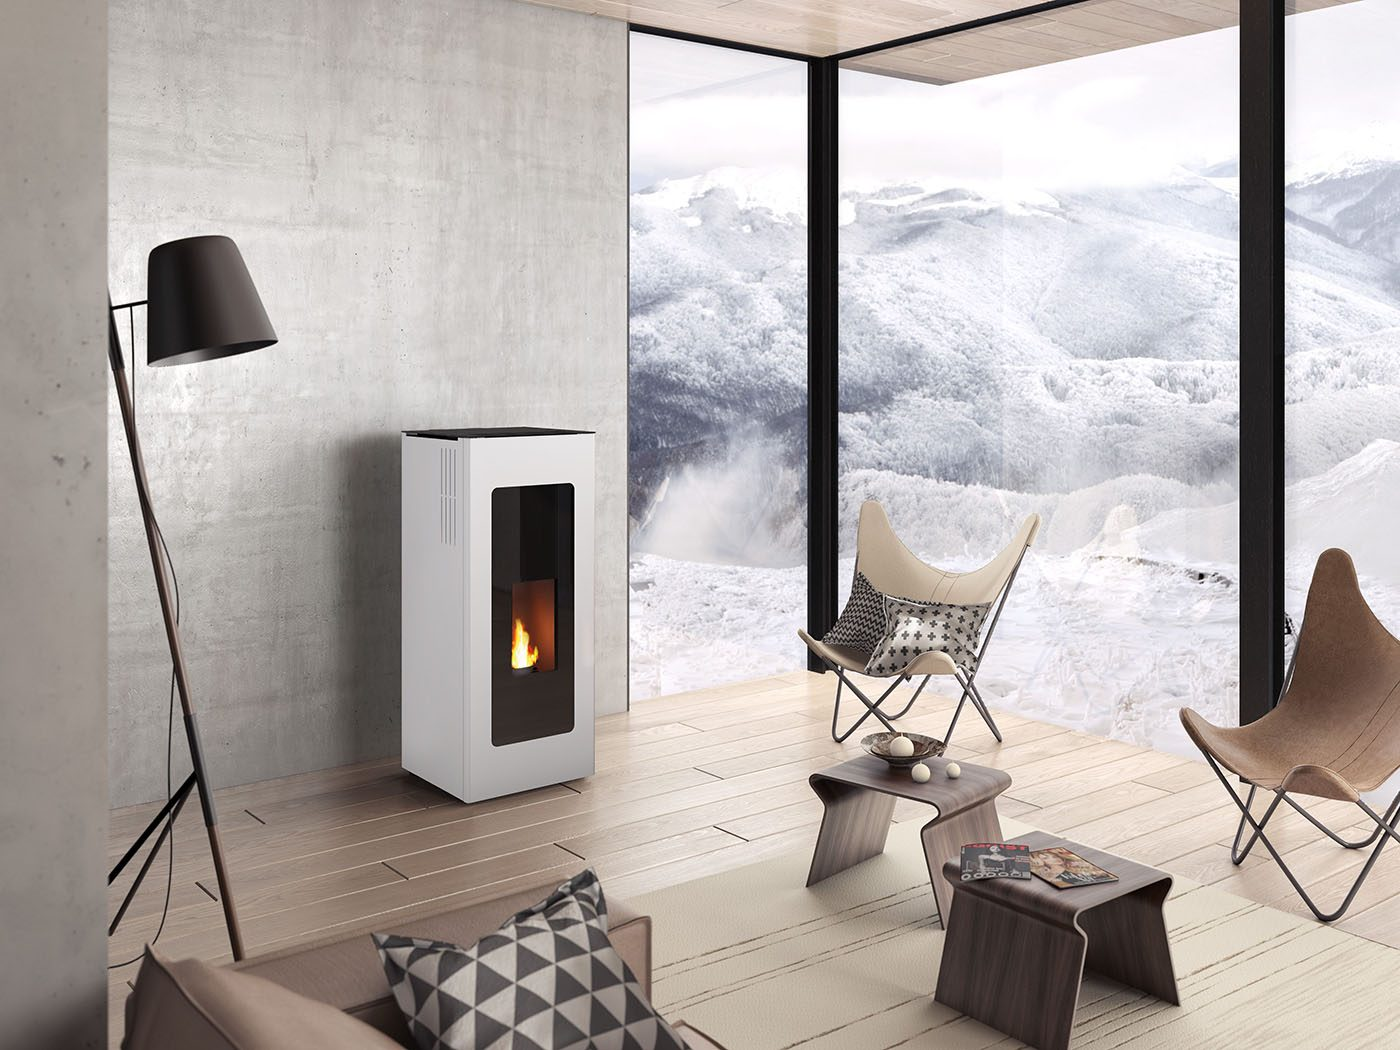 po le granul s jotul pf 730 blanc promotion jotul chamb ry. Black Bedroom Furniture Sets. Home Design Ideas